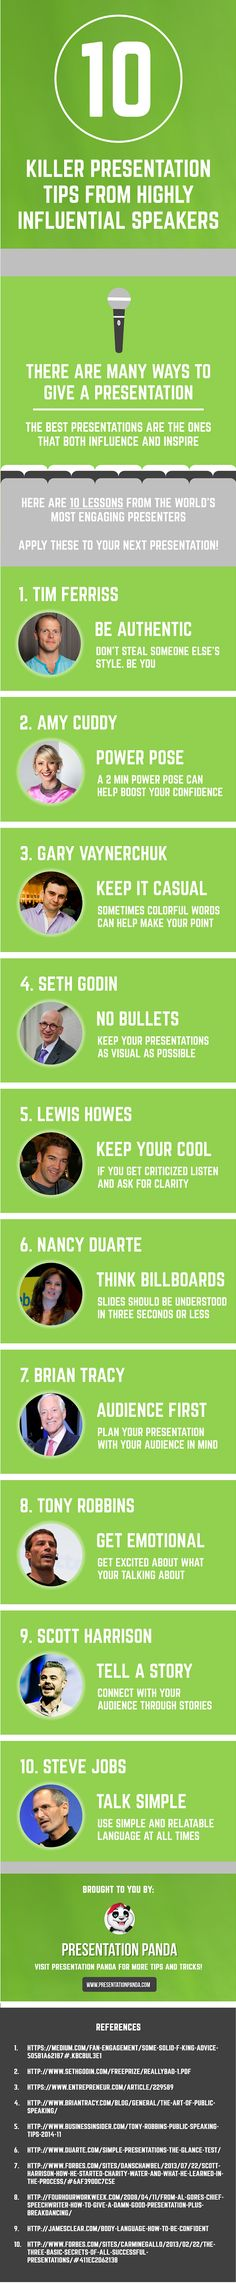 10 Killer Presentation Tips From Highly Influential Speakers #Infographic #PublicSpeaking #Presentation